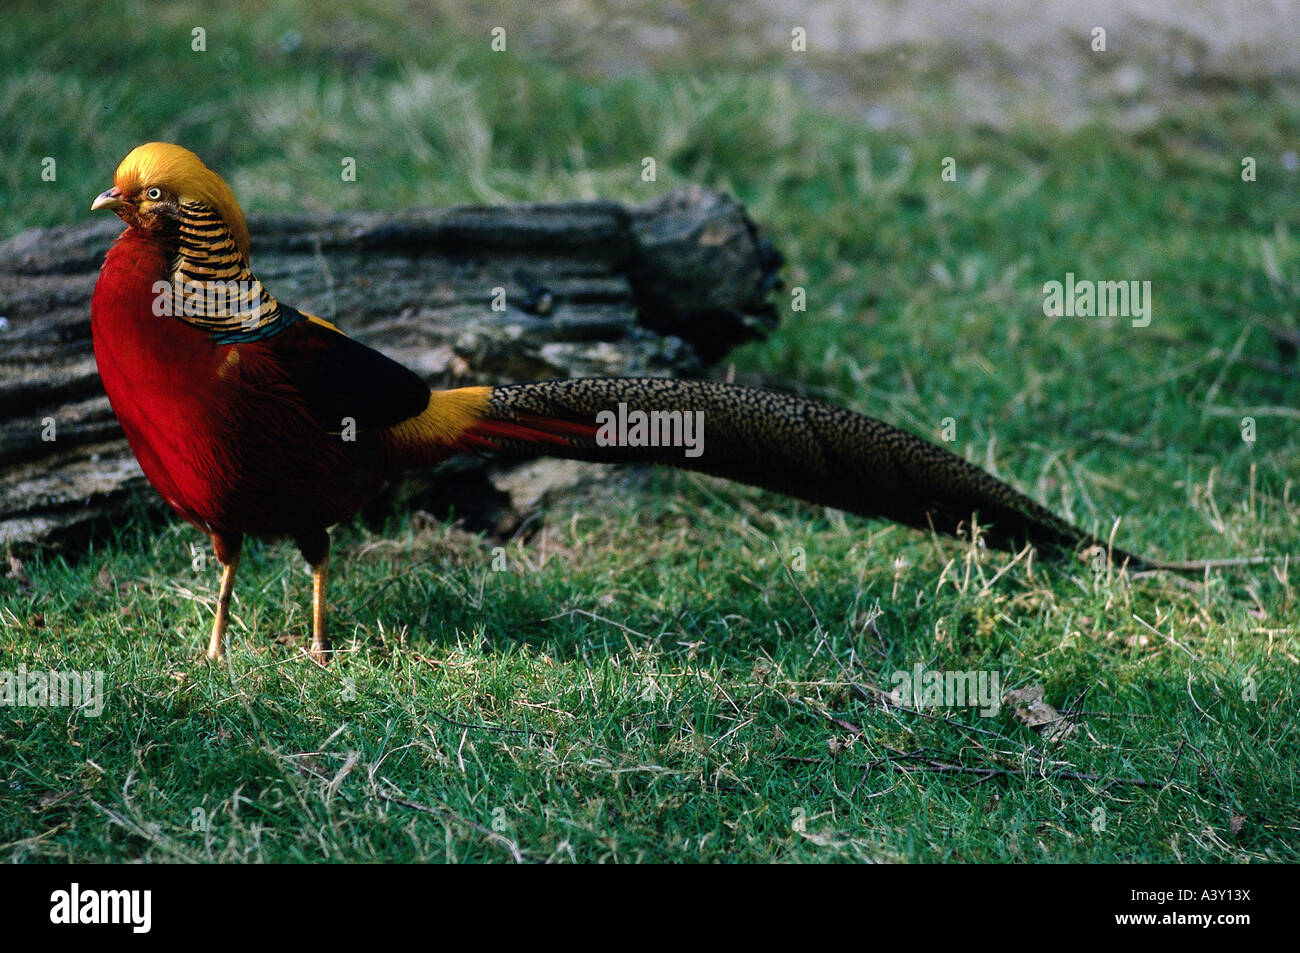 zoology / animals, avian / birds, Golden Pheasant, (Chrysolophus pictus), in Wildpark Eekholt, distribution: Central - Stock Image